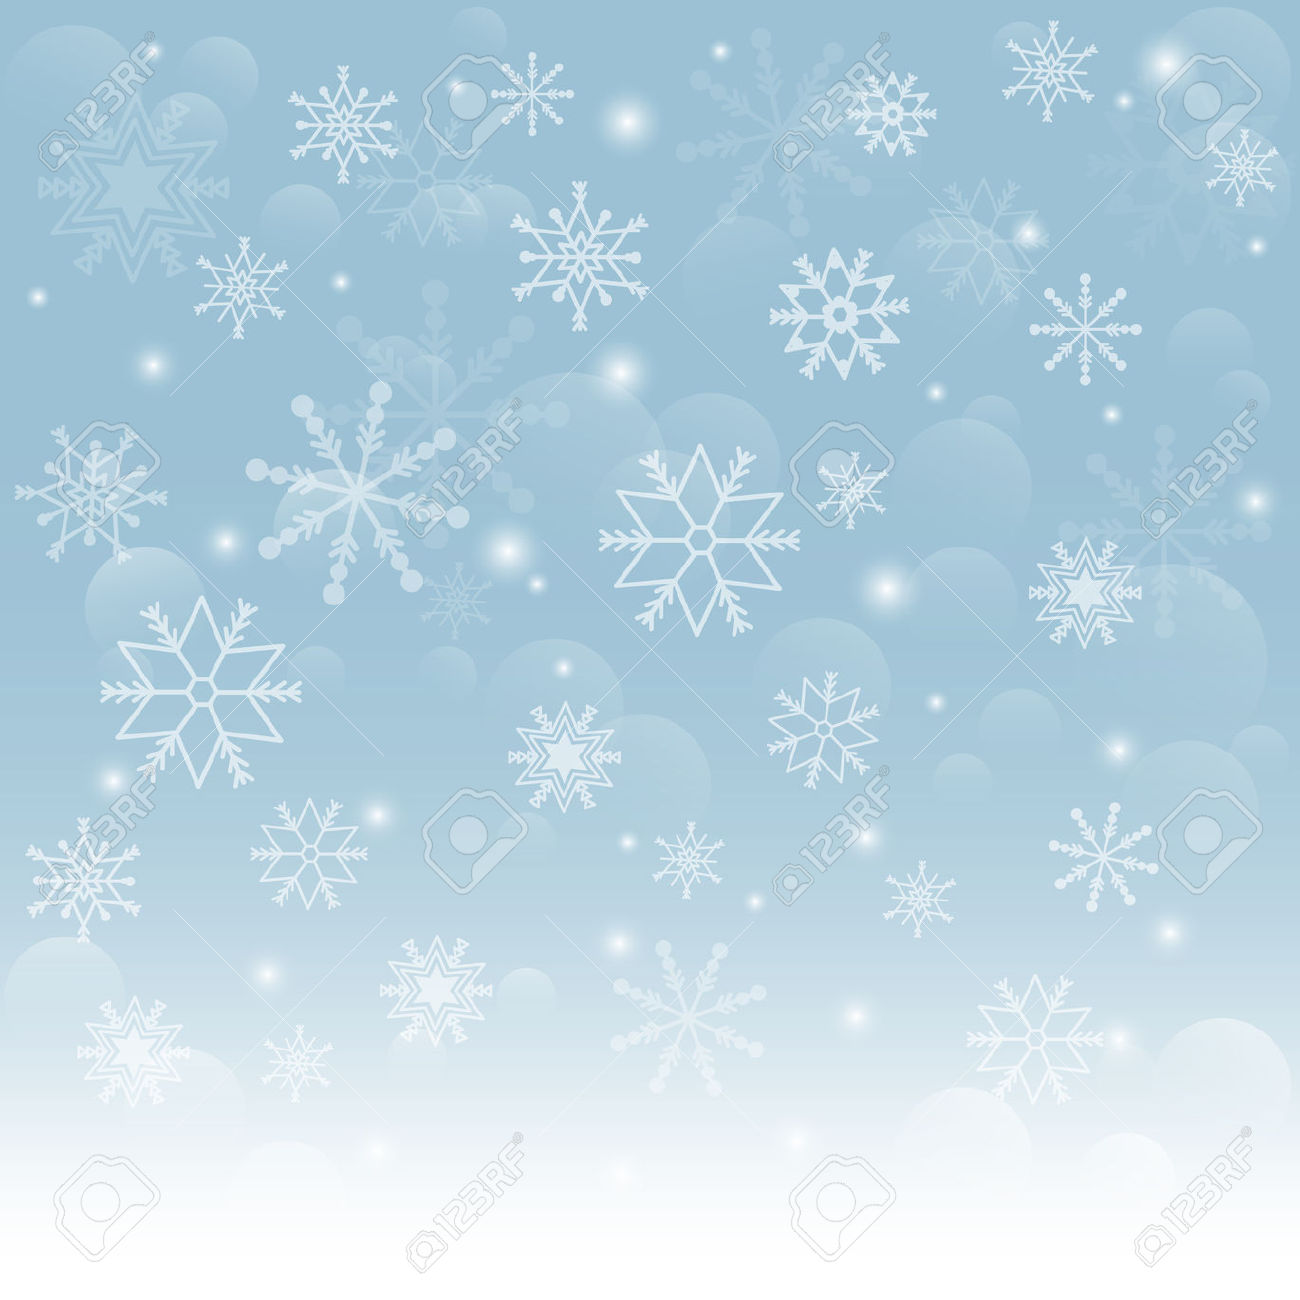 Falling snow background clipart.